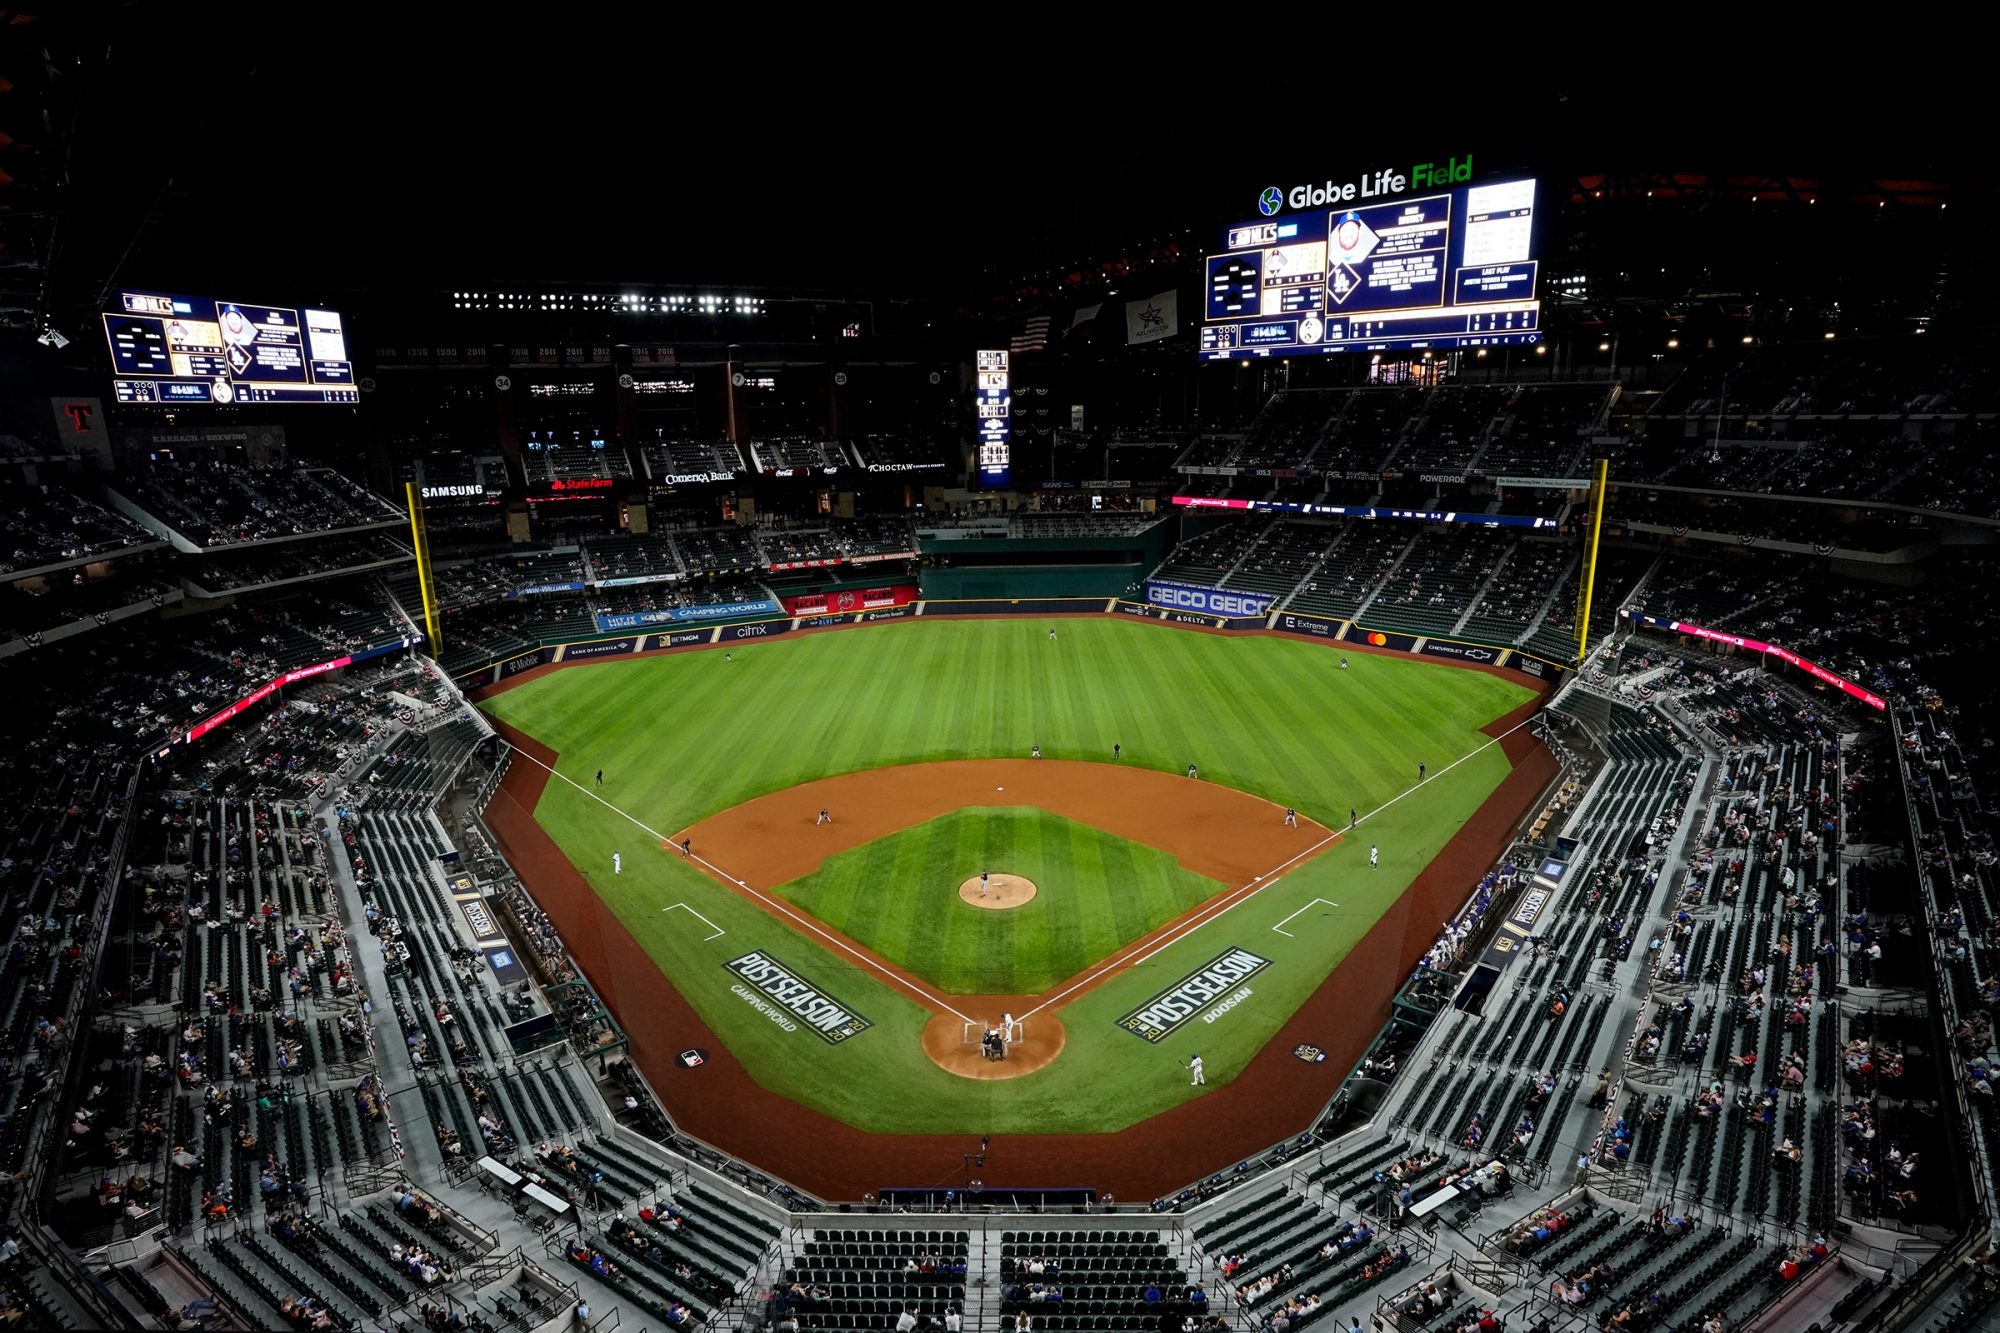 National League Championship Series between the Los Angeles Dodgers and the Atlanta Braves